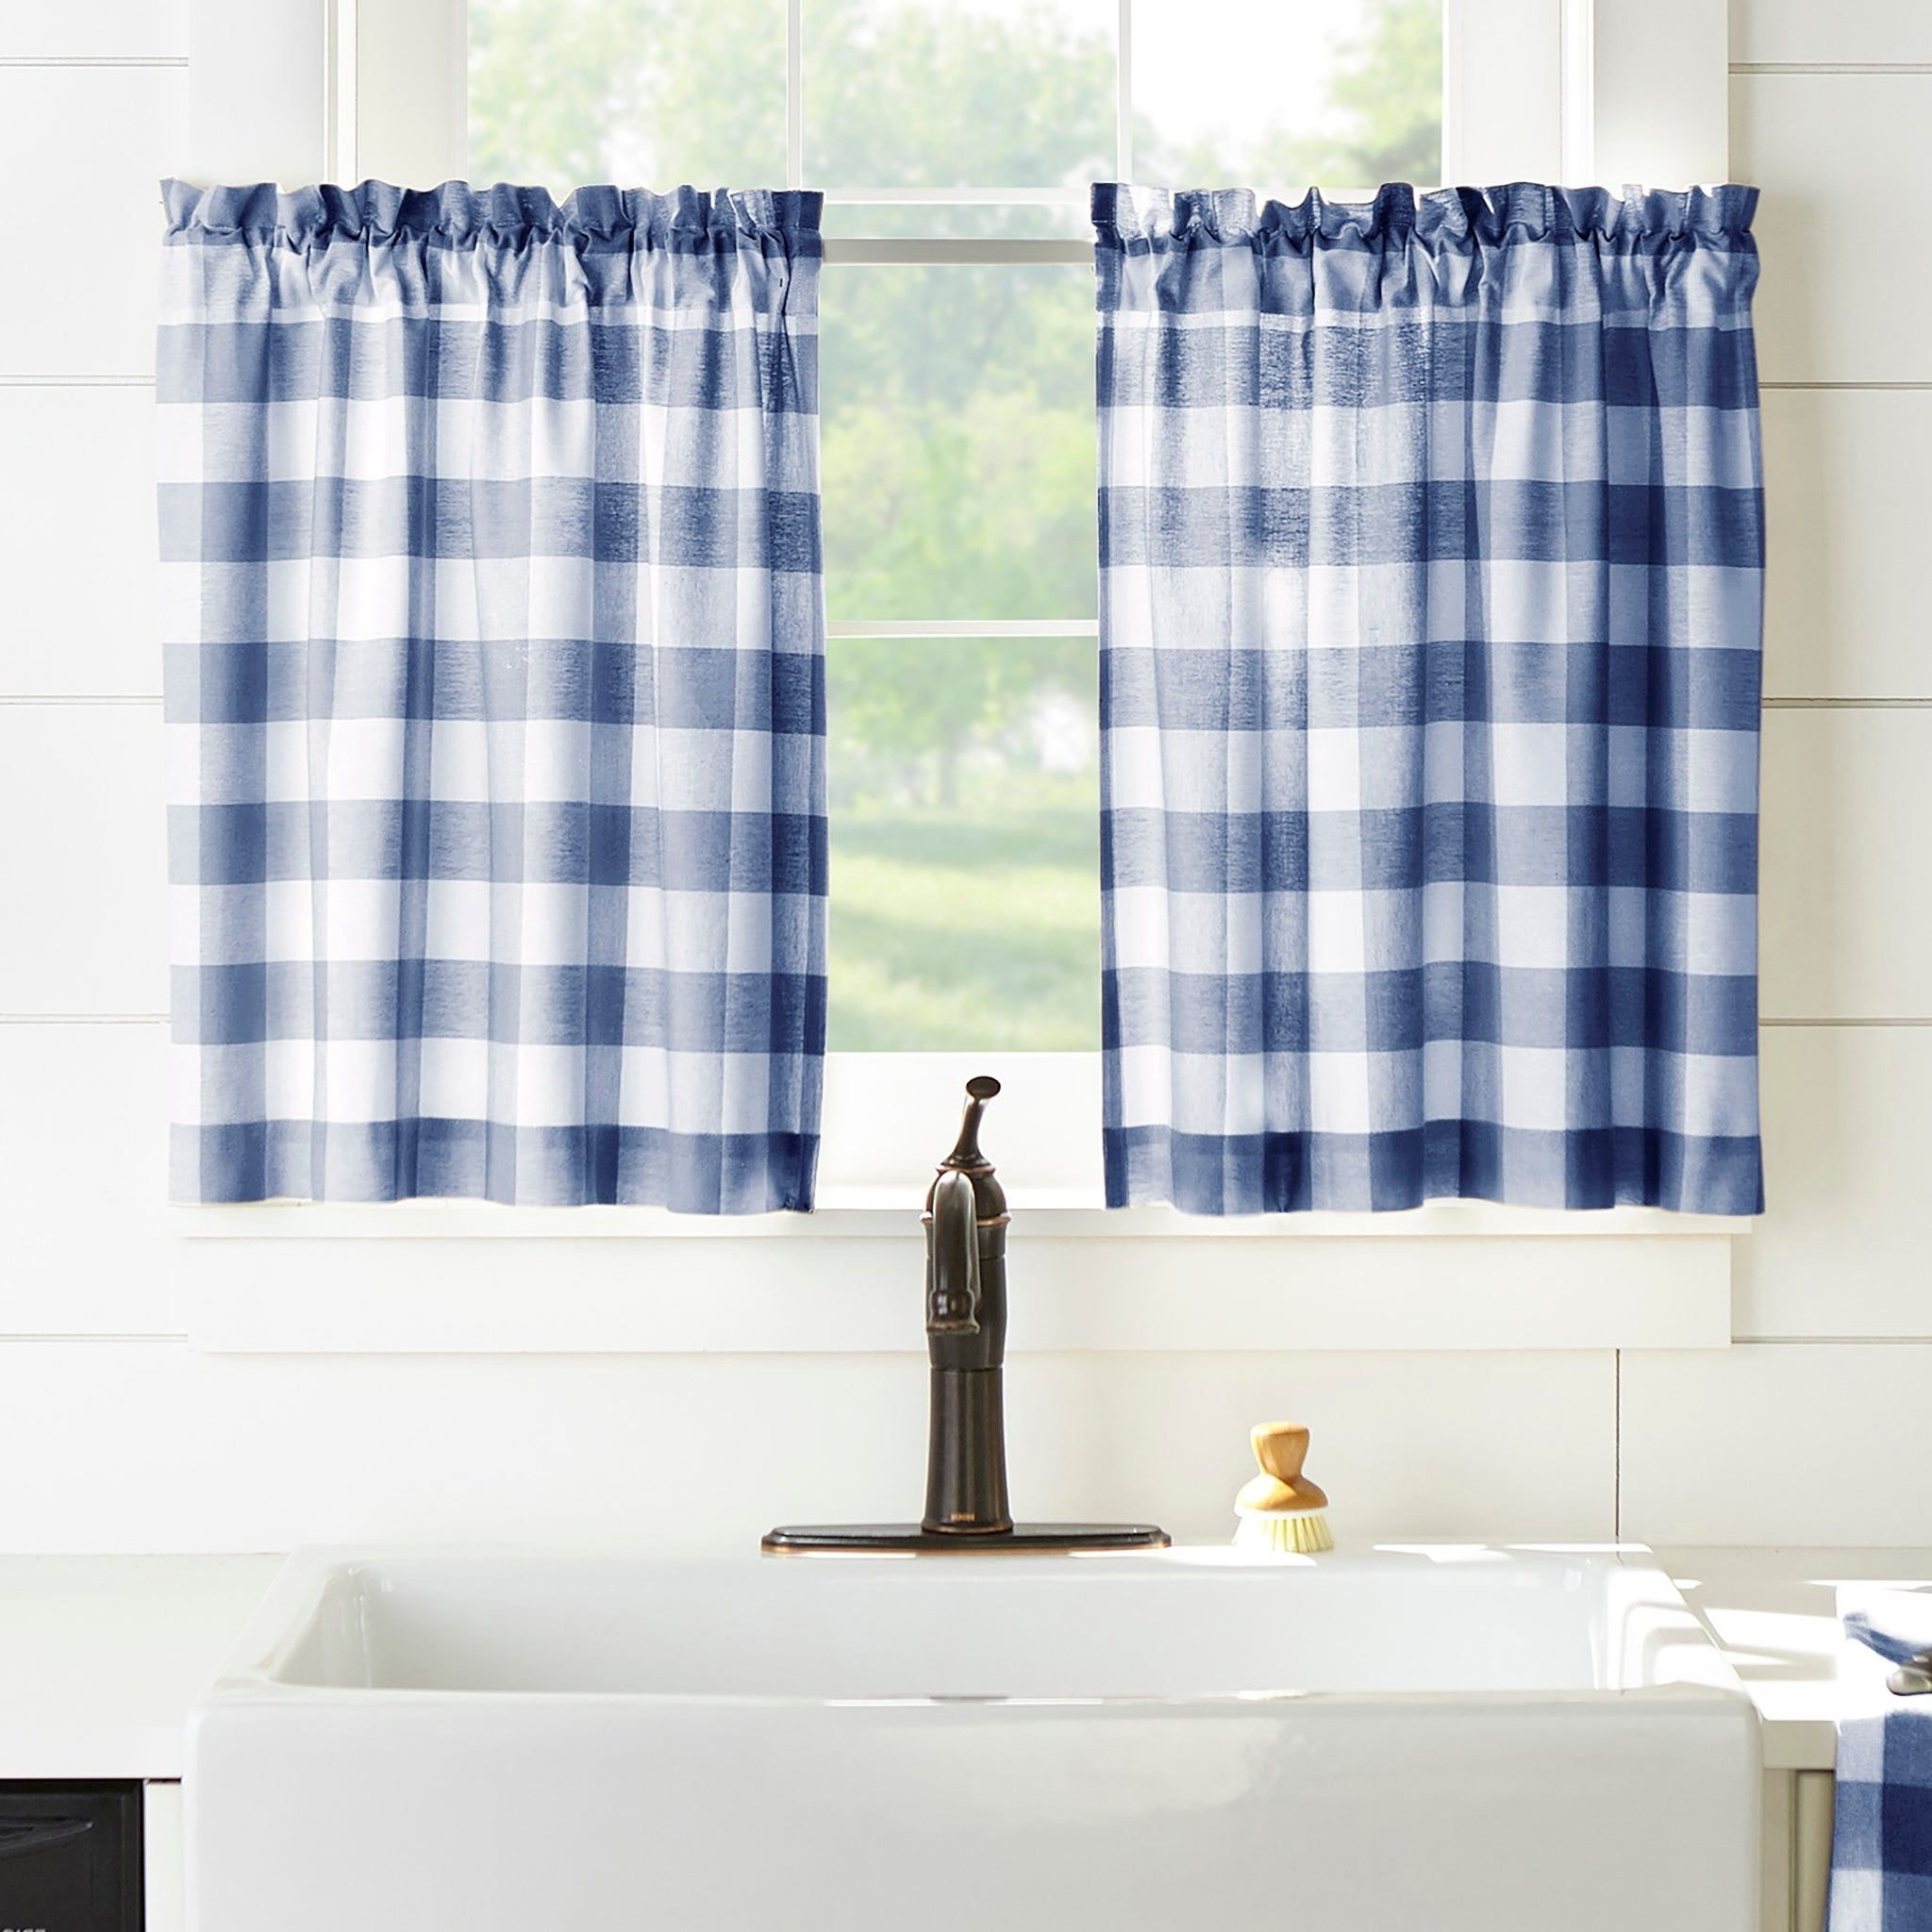 Classic Navy Cotton Blend Buffalo Check Kitchen Curtain Sets With Regard To Popular The Gray Barn Emily Gulch Buffalo Check Kitchen Window Tier Set (View 13 of 20)